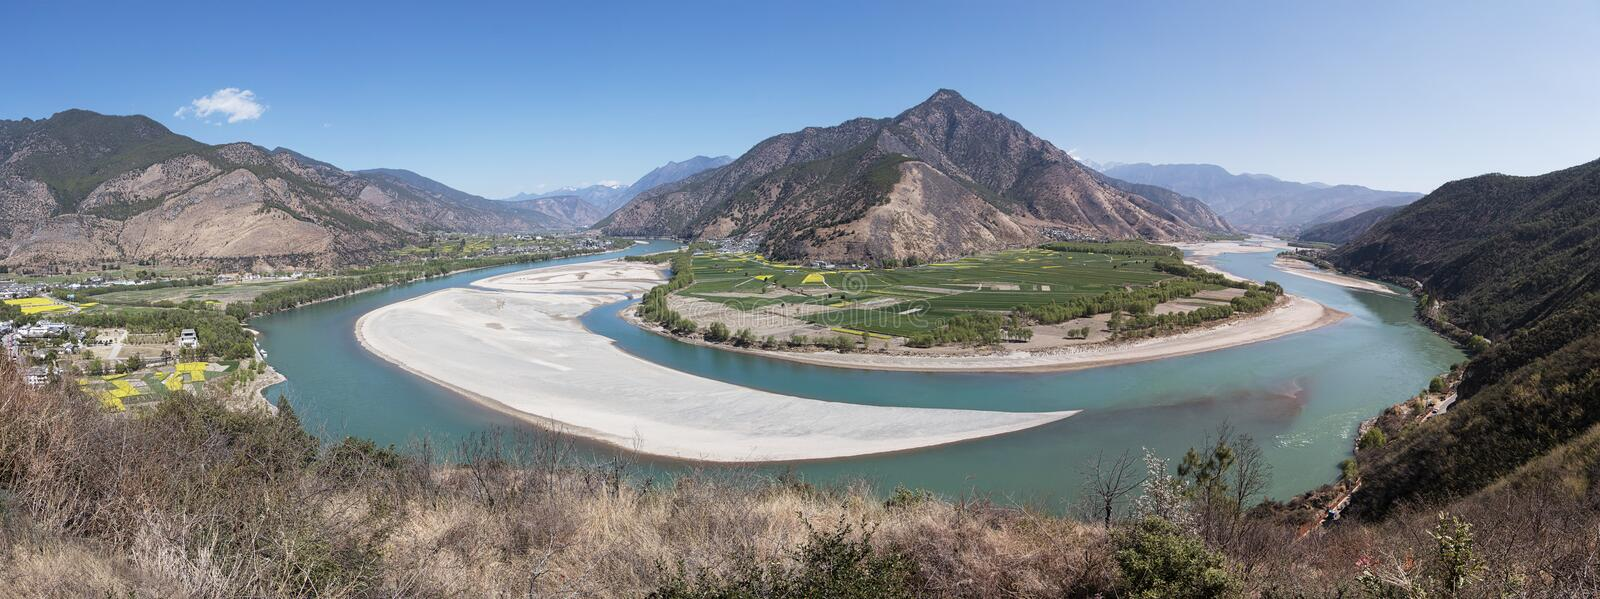 Panoramic view of the first bend of the Yangtze River near ShiGu village not far from Lijiang, Yunnan - China stock photography